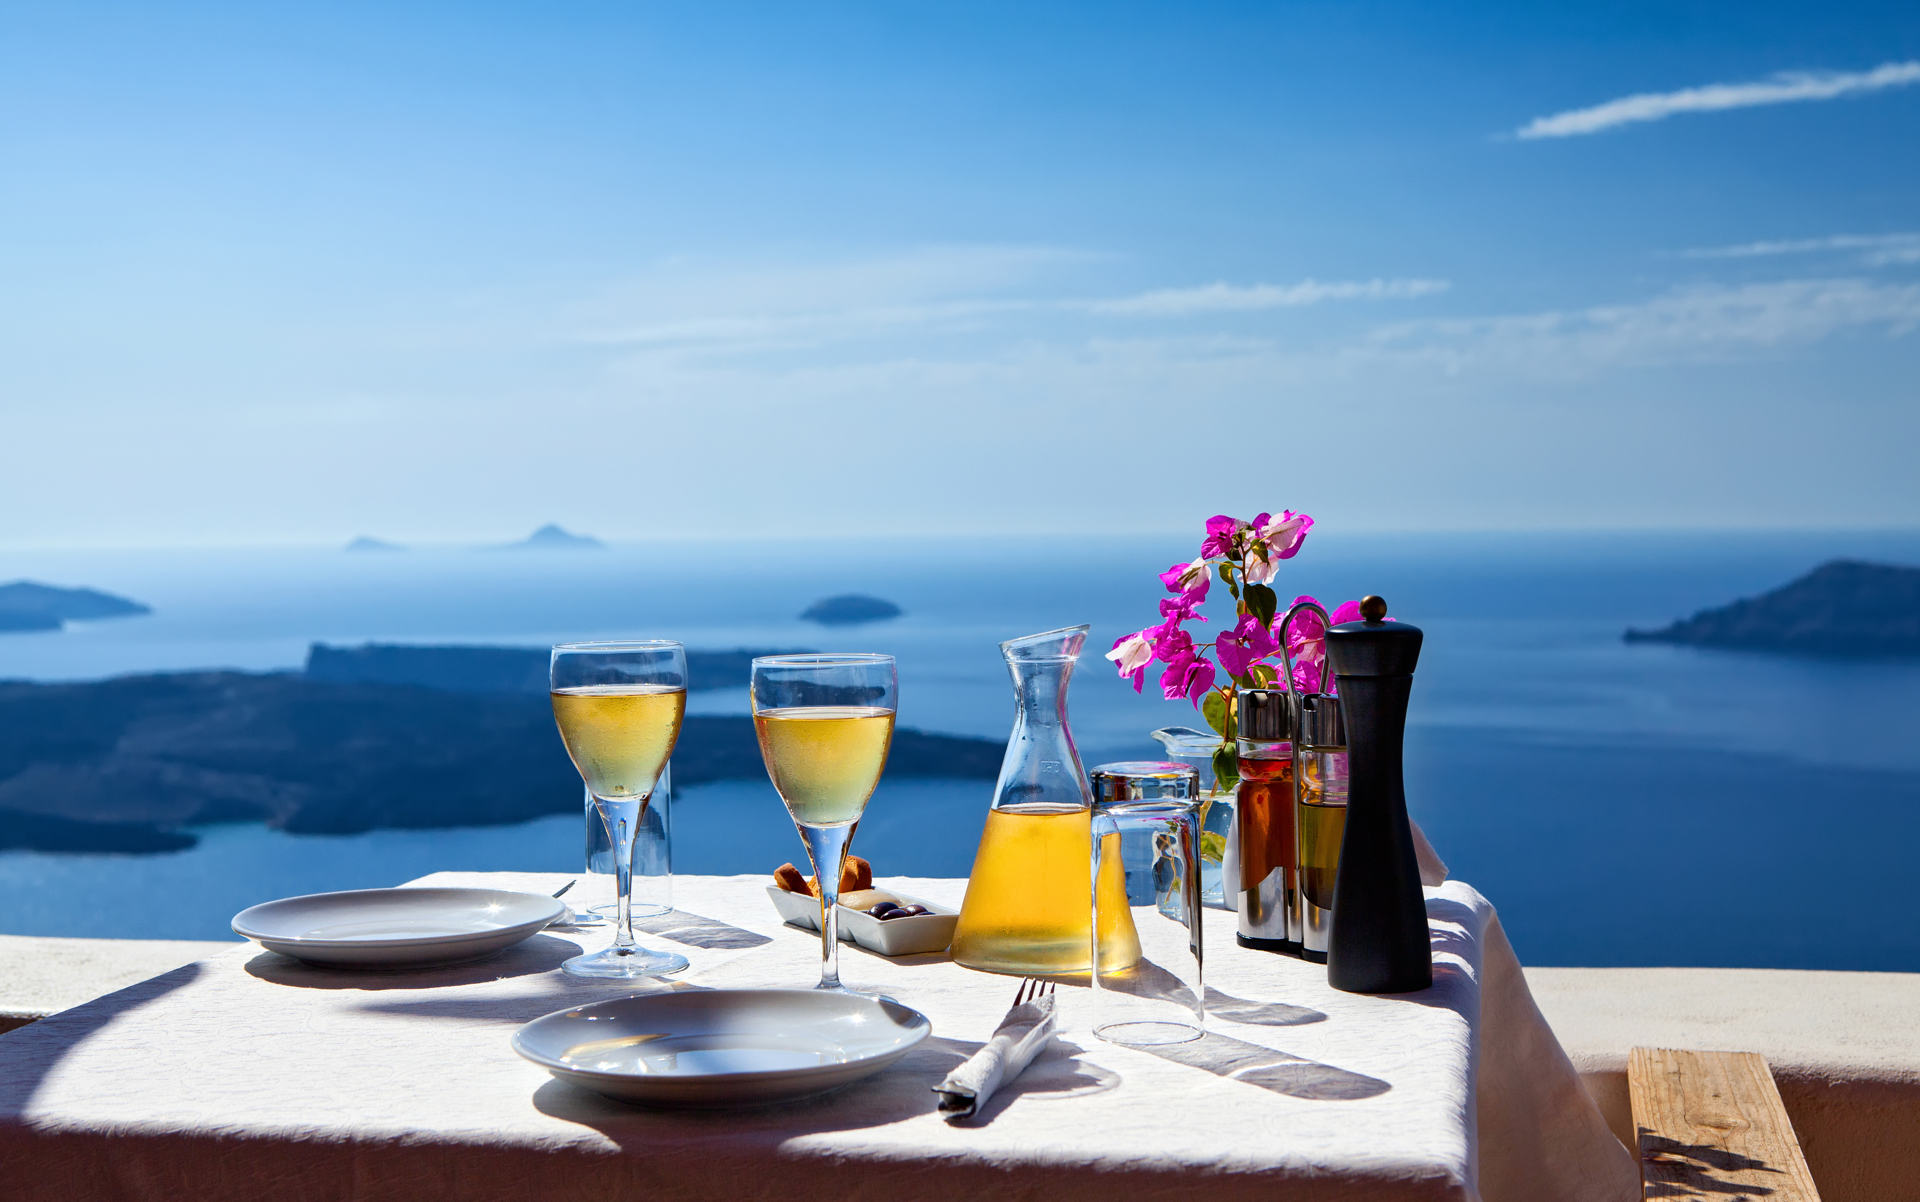 Table above sea for two in Santorini